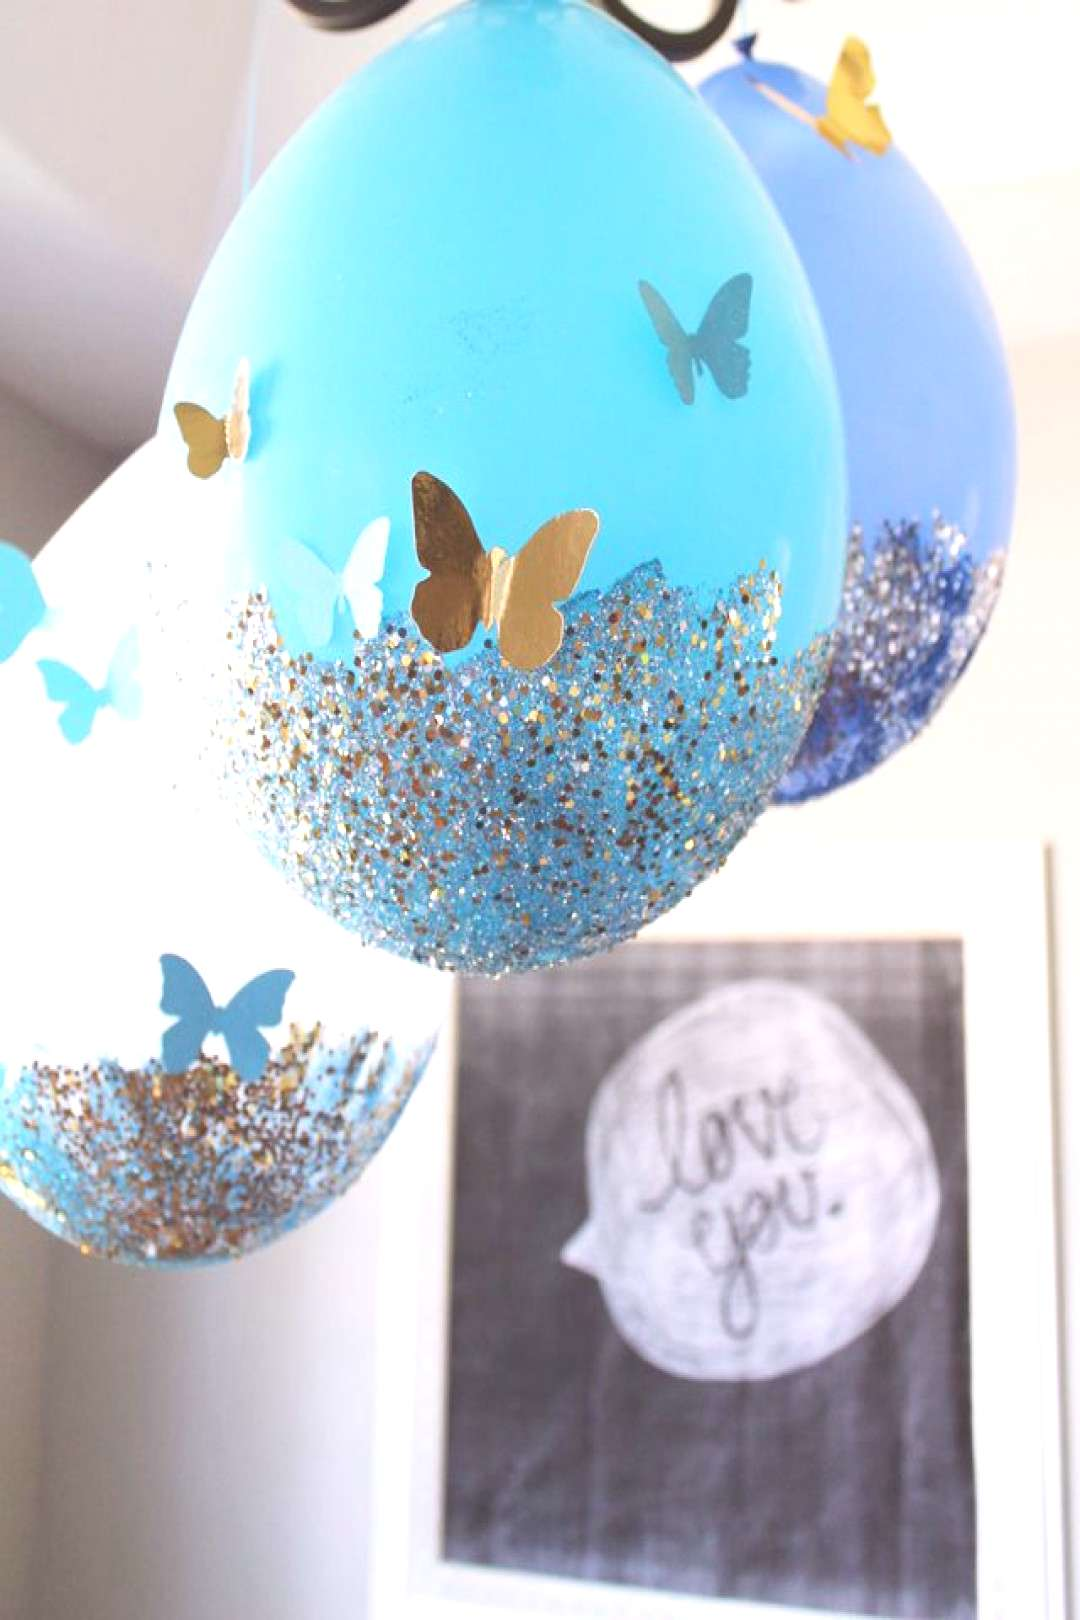 Here is the highly requested tutorial for my glitter dipped balloons! Since my daughter's Sleepin